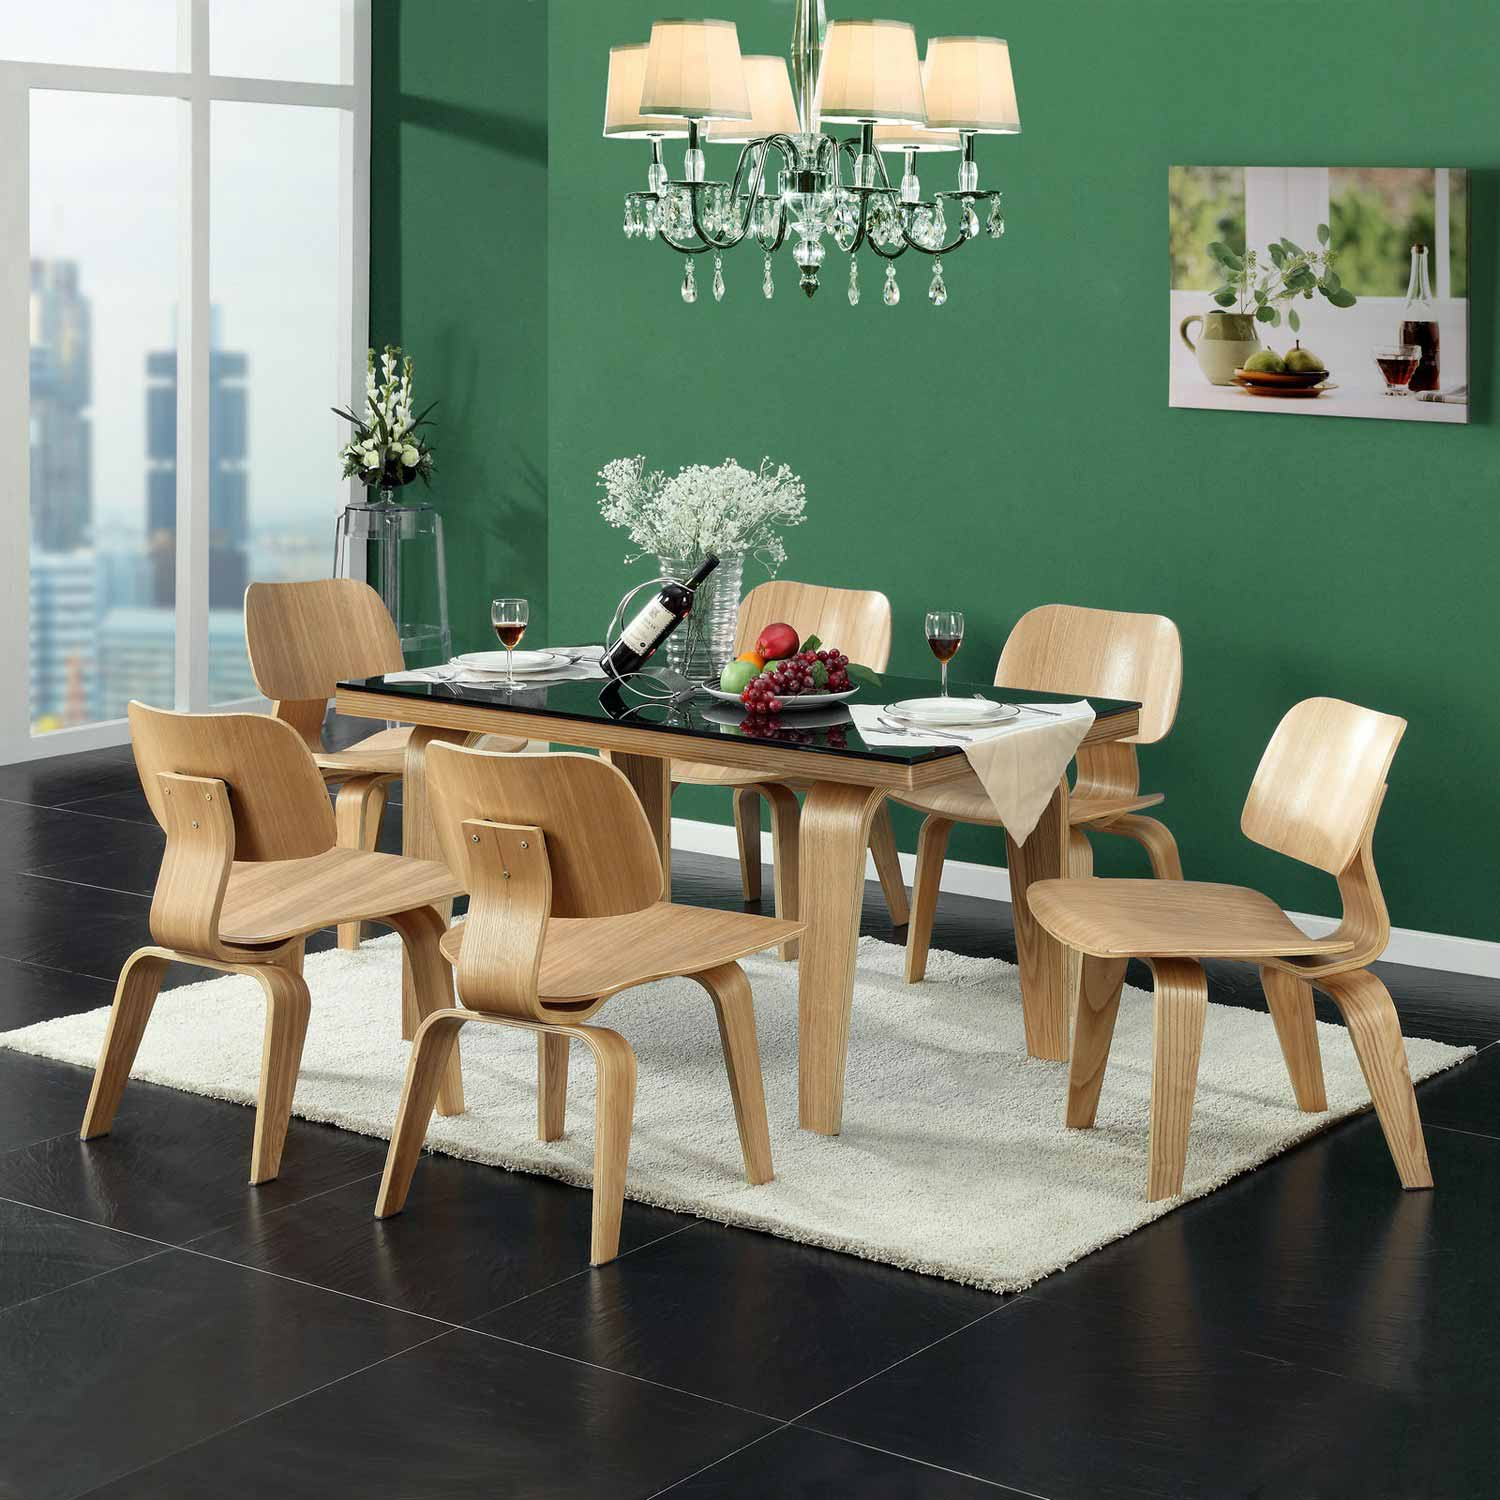 Modway Fathom Dining Chairs Set of 6 - Tan